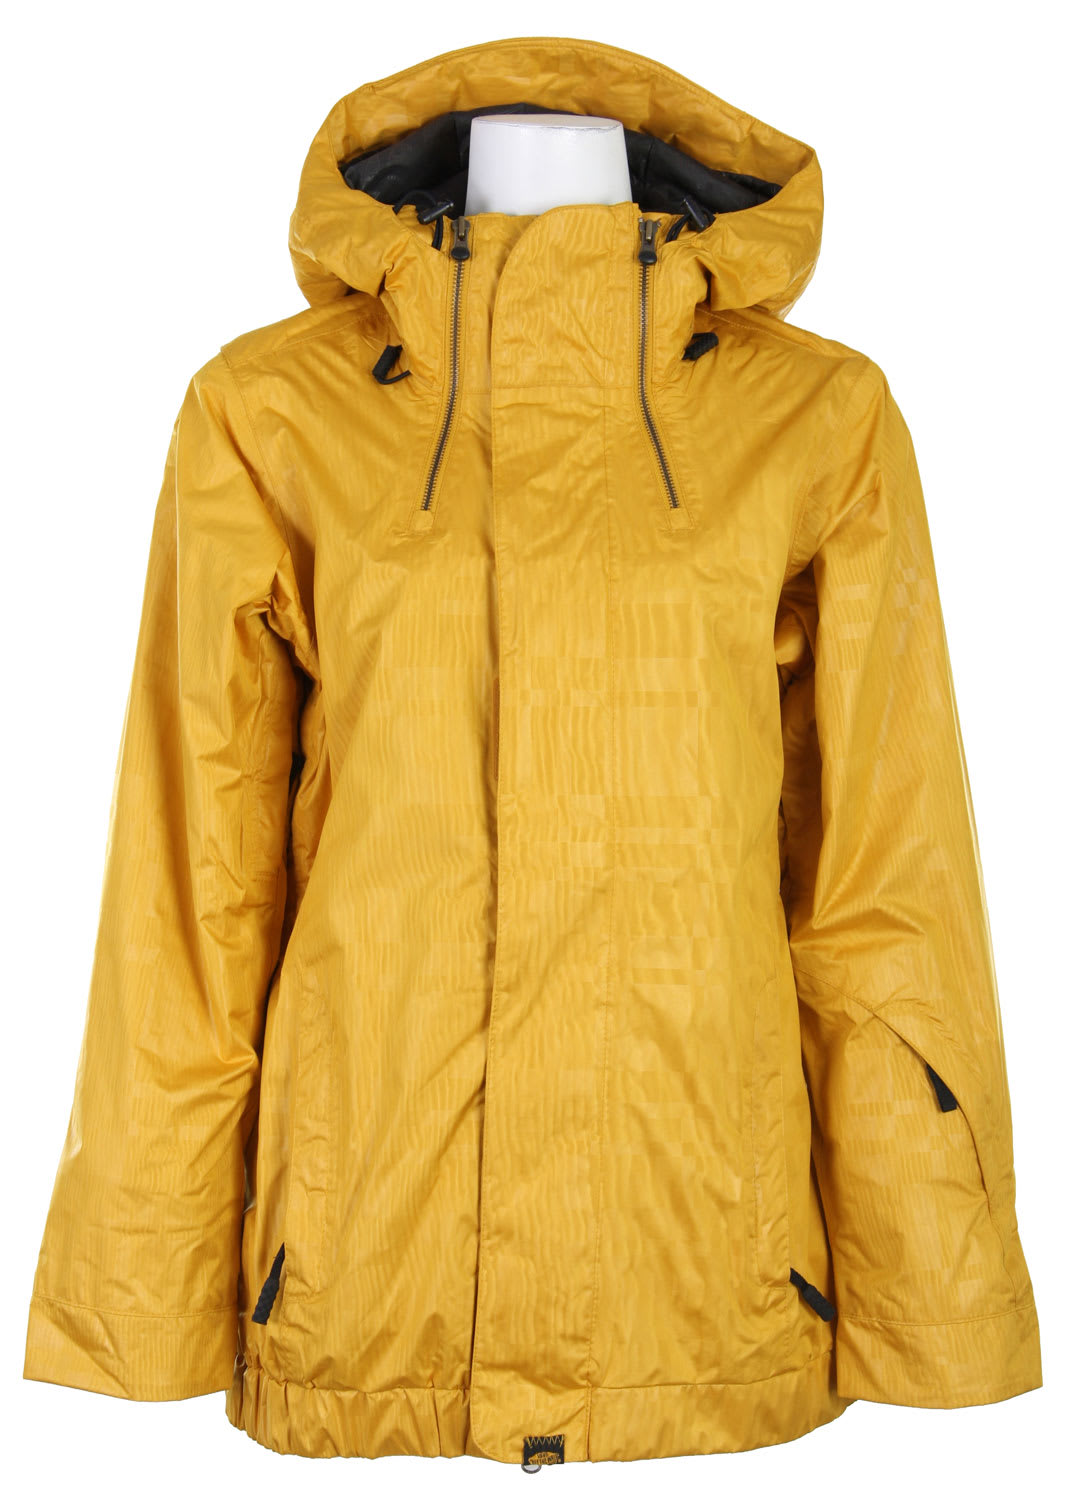 Vans Hana Insulated Snowboard Jacket Gold Wnd - Women's